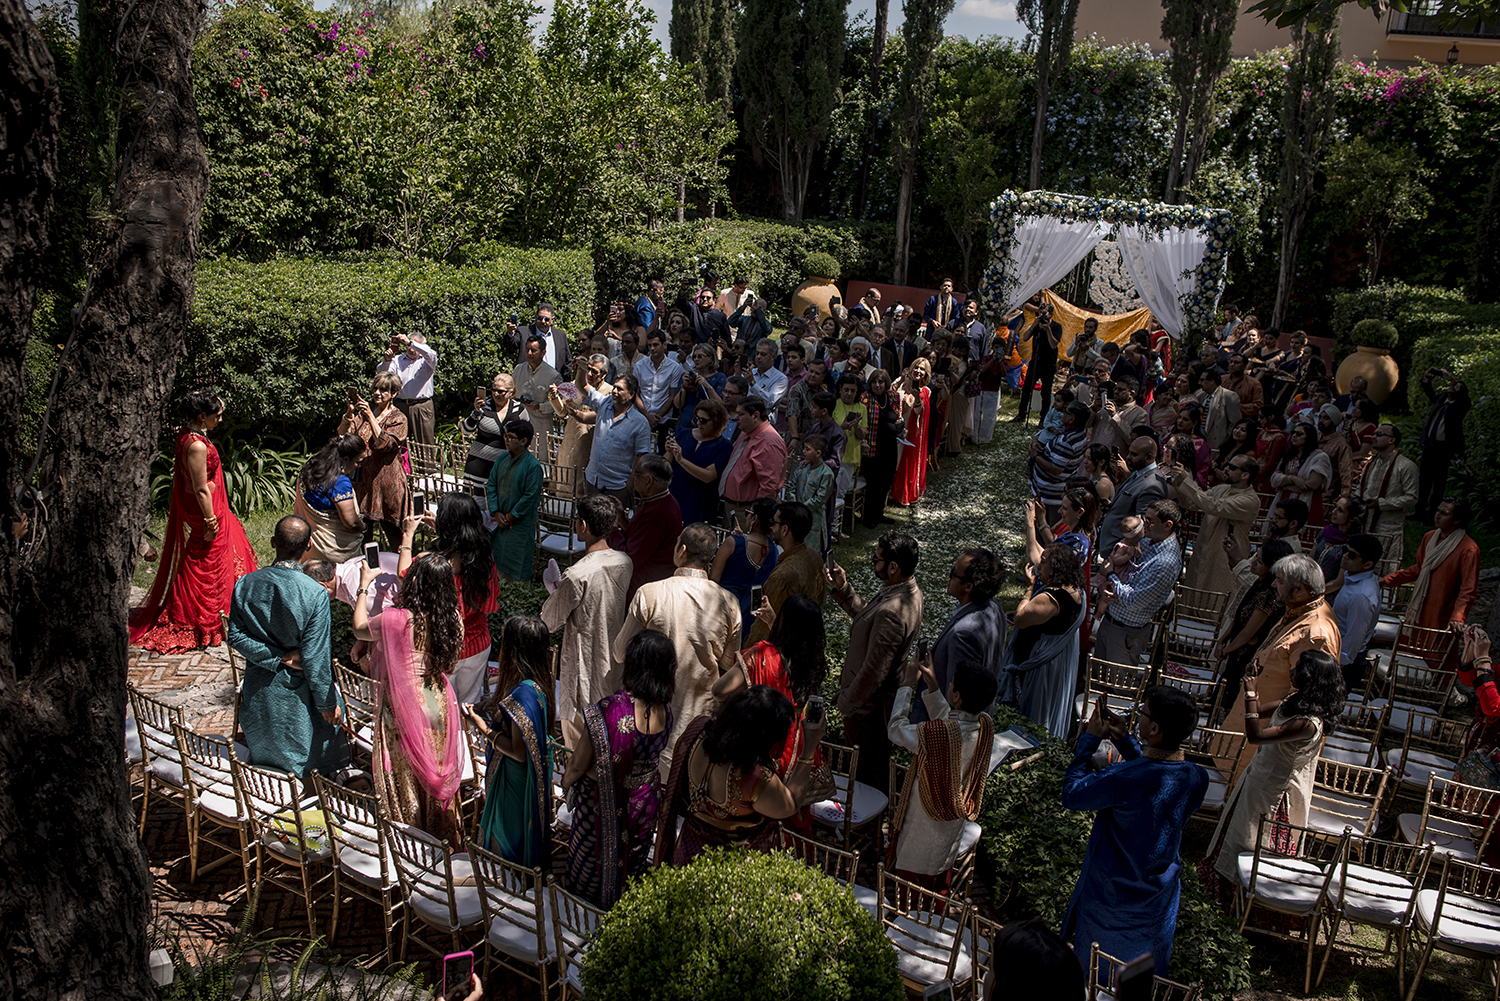 indian_wedding_san_miguel_de_allende_chio_garcia_photographer (37).jpg